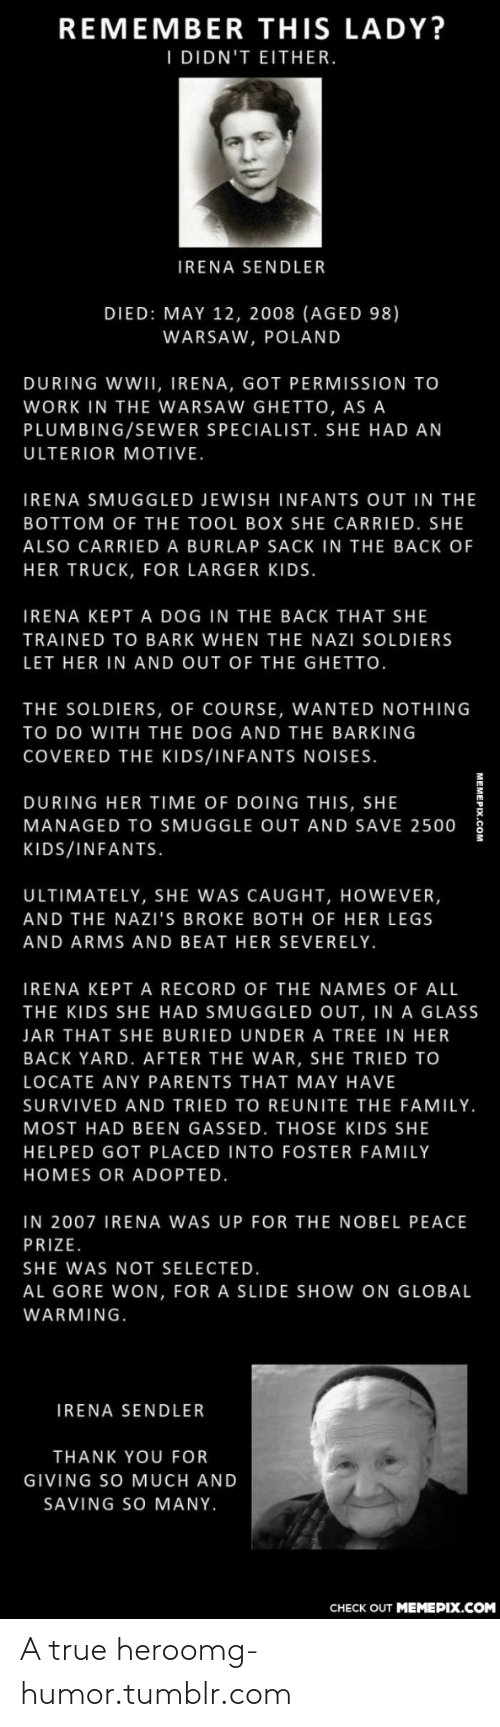 Al Gore: REMEMBER THIS LADY?  I DIDN'T EITHER.  IRENA SENDLER  DIED: MAY 12, 2008 (AGED 98)  WARSAW, POLAND  DURING WWII, IRENA, GOT PERMISSION TO  WORK IN THE WARSAW GHETTO, AS A  PLUMBING/SEWER SPECIALIST. SHE HAD AN  ULTERIOR MOTIVE.  IRENA SMUGGLED JEWISH INFANTS OUT IN THE  BOTTOM OF THE TOOL BOX SHE CARRIED. SHE  ALSO CARRIED A BURLAP SACK IN THE BACK OF  HER TRUCK, FOR LARGER KIDS.  IRENA KEPT A DOG IN THE BACK THAT SHE  TRAINED TO BARK WHEN THE NAZI SOLDIERS  LET HER IN AND OUT OF THE GHETTO.  THE SOLDIERS, OF COURSE, WANTED NOTHING  TO DO WITH THE DOG AND THE BARKING  COVERED THE KIDS/INFANTS NOISES.  DURING HER TIME OF DOING THIS, SHE  MANAGED TO SMUGGLE OUT AND SAVE 2500  KIDS/INFANTS.  ULTIMATELY, SHE WAS CAUGHT, HOWEVER,  AND THE NAZI'S BROKE BOTH OF HER LEGS  AND ARMS AND BEAT HER SEVERELY.  IRENA KEPT A RECORD OF THE NAMES OF ALL  THE KIDS SHE HAD SMUGGLED OUT, IN A GLASS  JAR THAT SHE BURIED UNDER A TREE IN HER  BACK YARD. AFTER THE WAR, SHE TRIED TO  LOCATE ANY PARENTS THAT MAY HAVE  SURVIVED AND TRIED TO REUNITE THE FAMILY.  MOST HAD BEEN GASSED. THOSE KIDS SHE  HELPED GOT PLACED INTO FOSTER FAMILY  HOMES OR ADOPTED.  IN 2007 IRENA WAS UP FOR THE NOBEL PEACE  PRIZE.  SHE WAS NOT SELECTED.  AL GORE WON, FOR A SLIDE SHOW ON GLOBAL  WARMING.  IRENA SENDLER  THANK YOU FOR  GIVING SO MUCH AND  SAVING SO MANY.  CНЕCK OUT MEМЕРIХ.COM A true heroomg-humor.tumblr.com